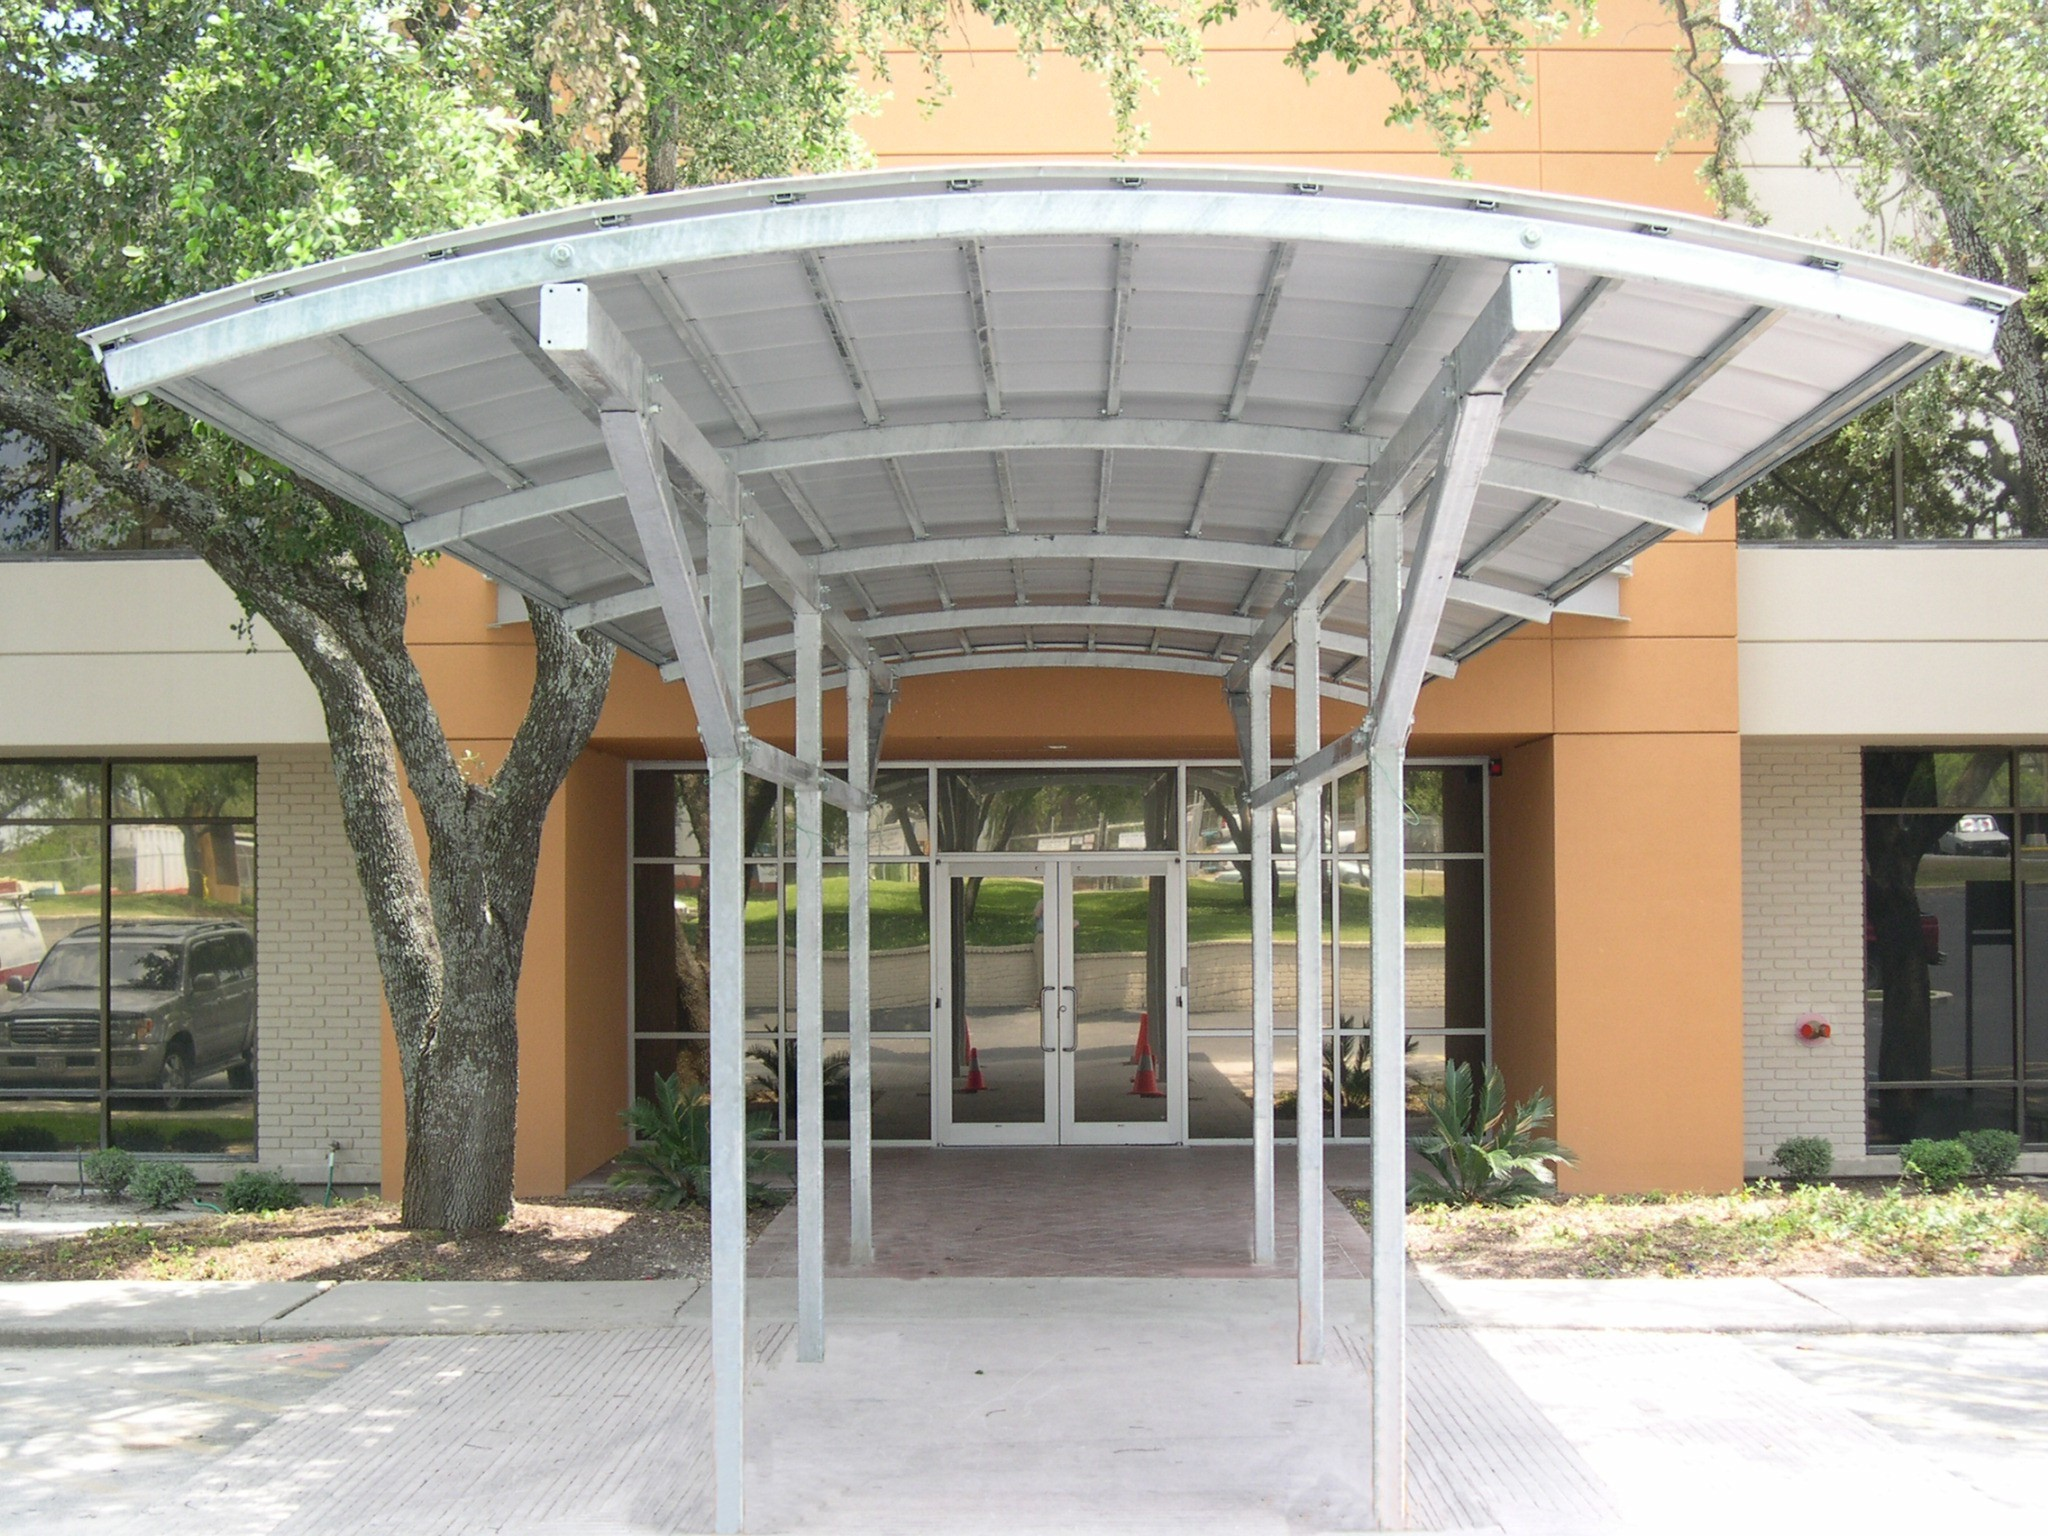 Canopy Awning Structures By Design